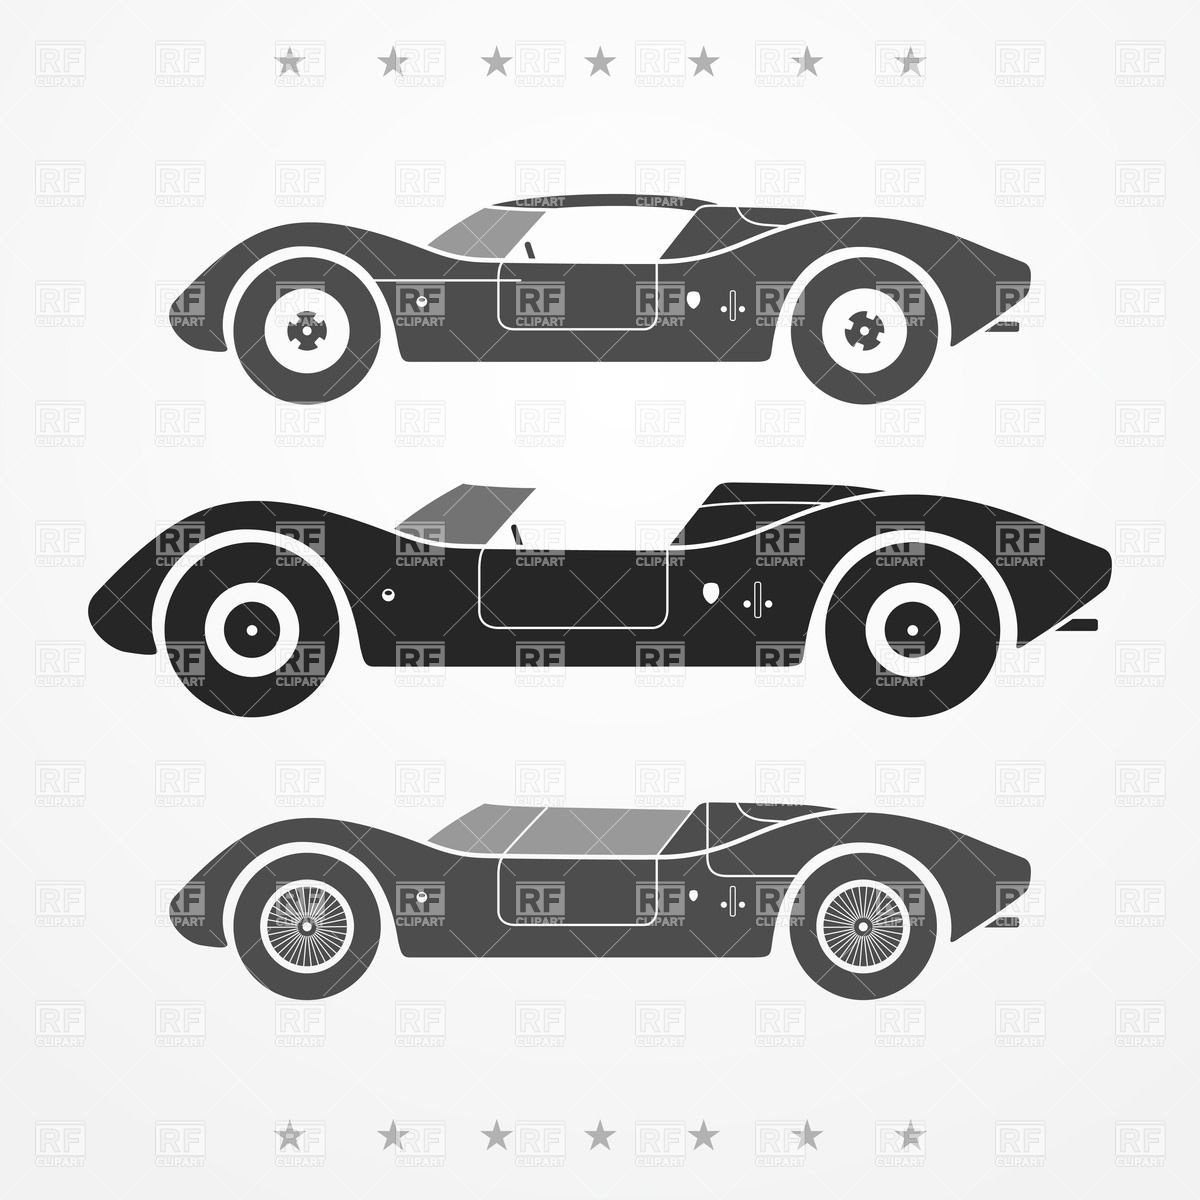 Classic Car clipart racing car Race car silhouette vintage Search